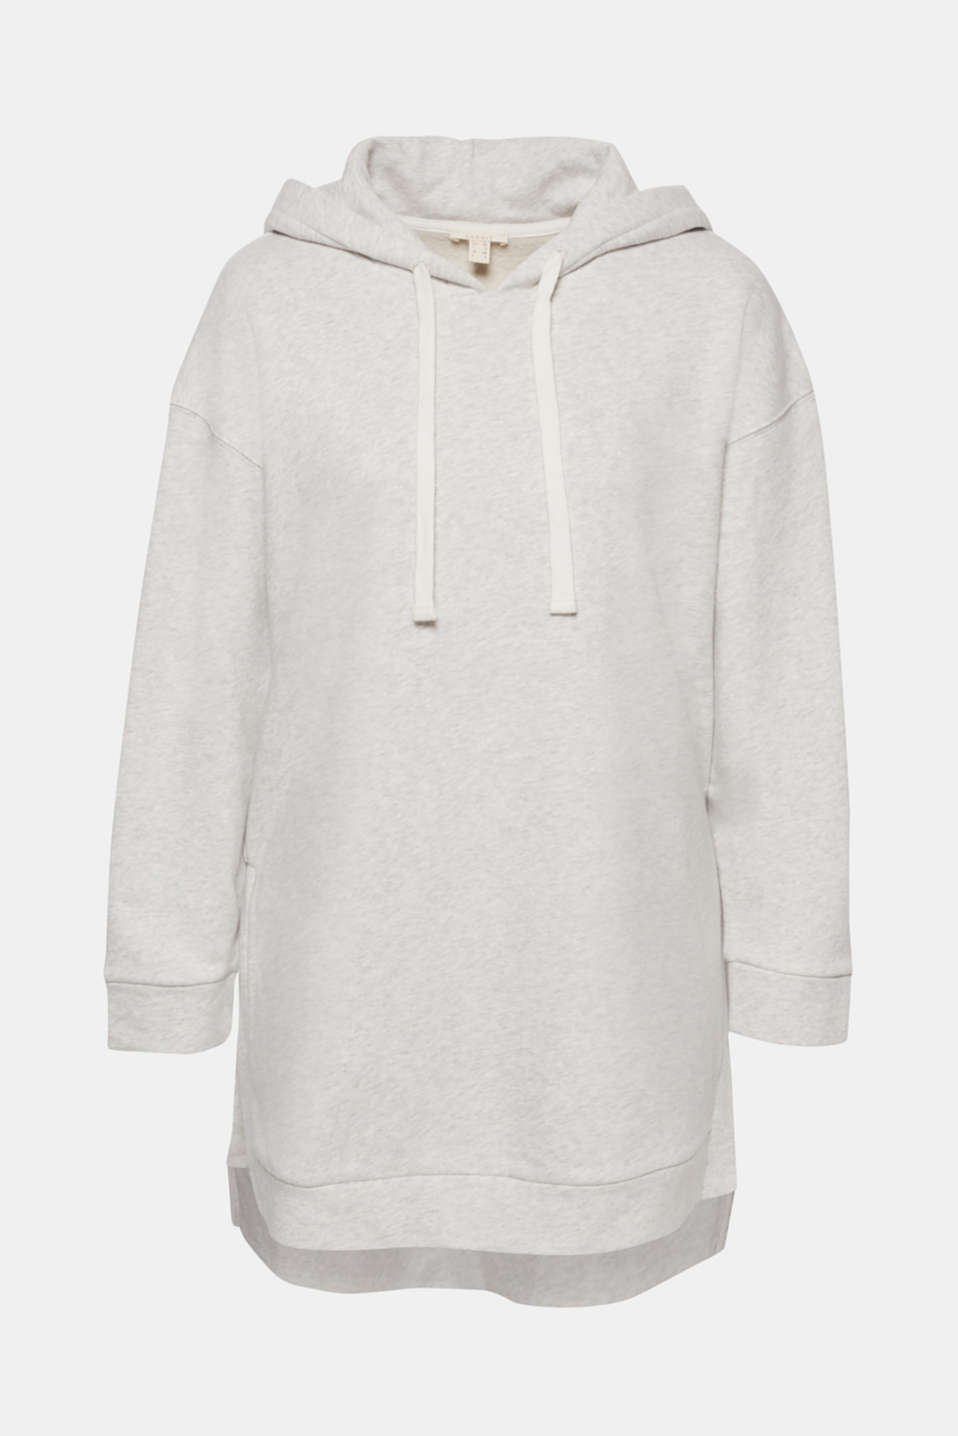 The rubberised print with an ESPRIT logo turns this comfortable hoodie in an oversized look into a sporty head-turner.